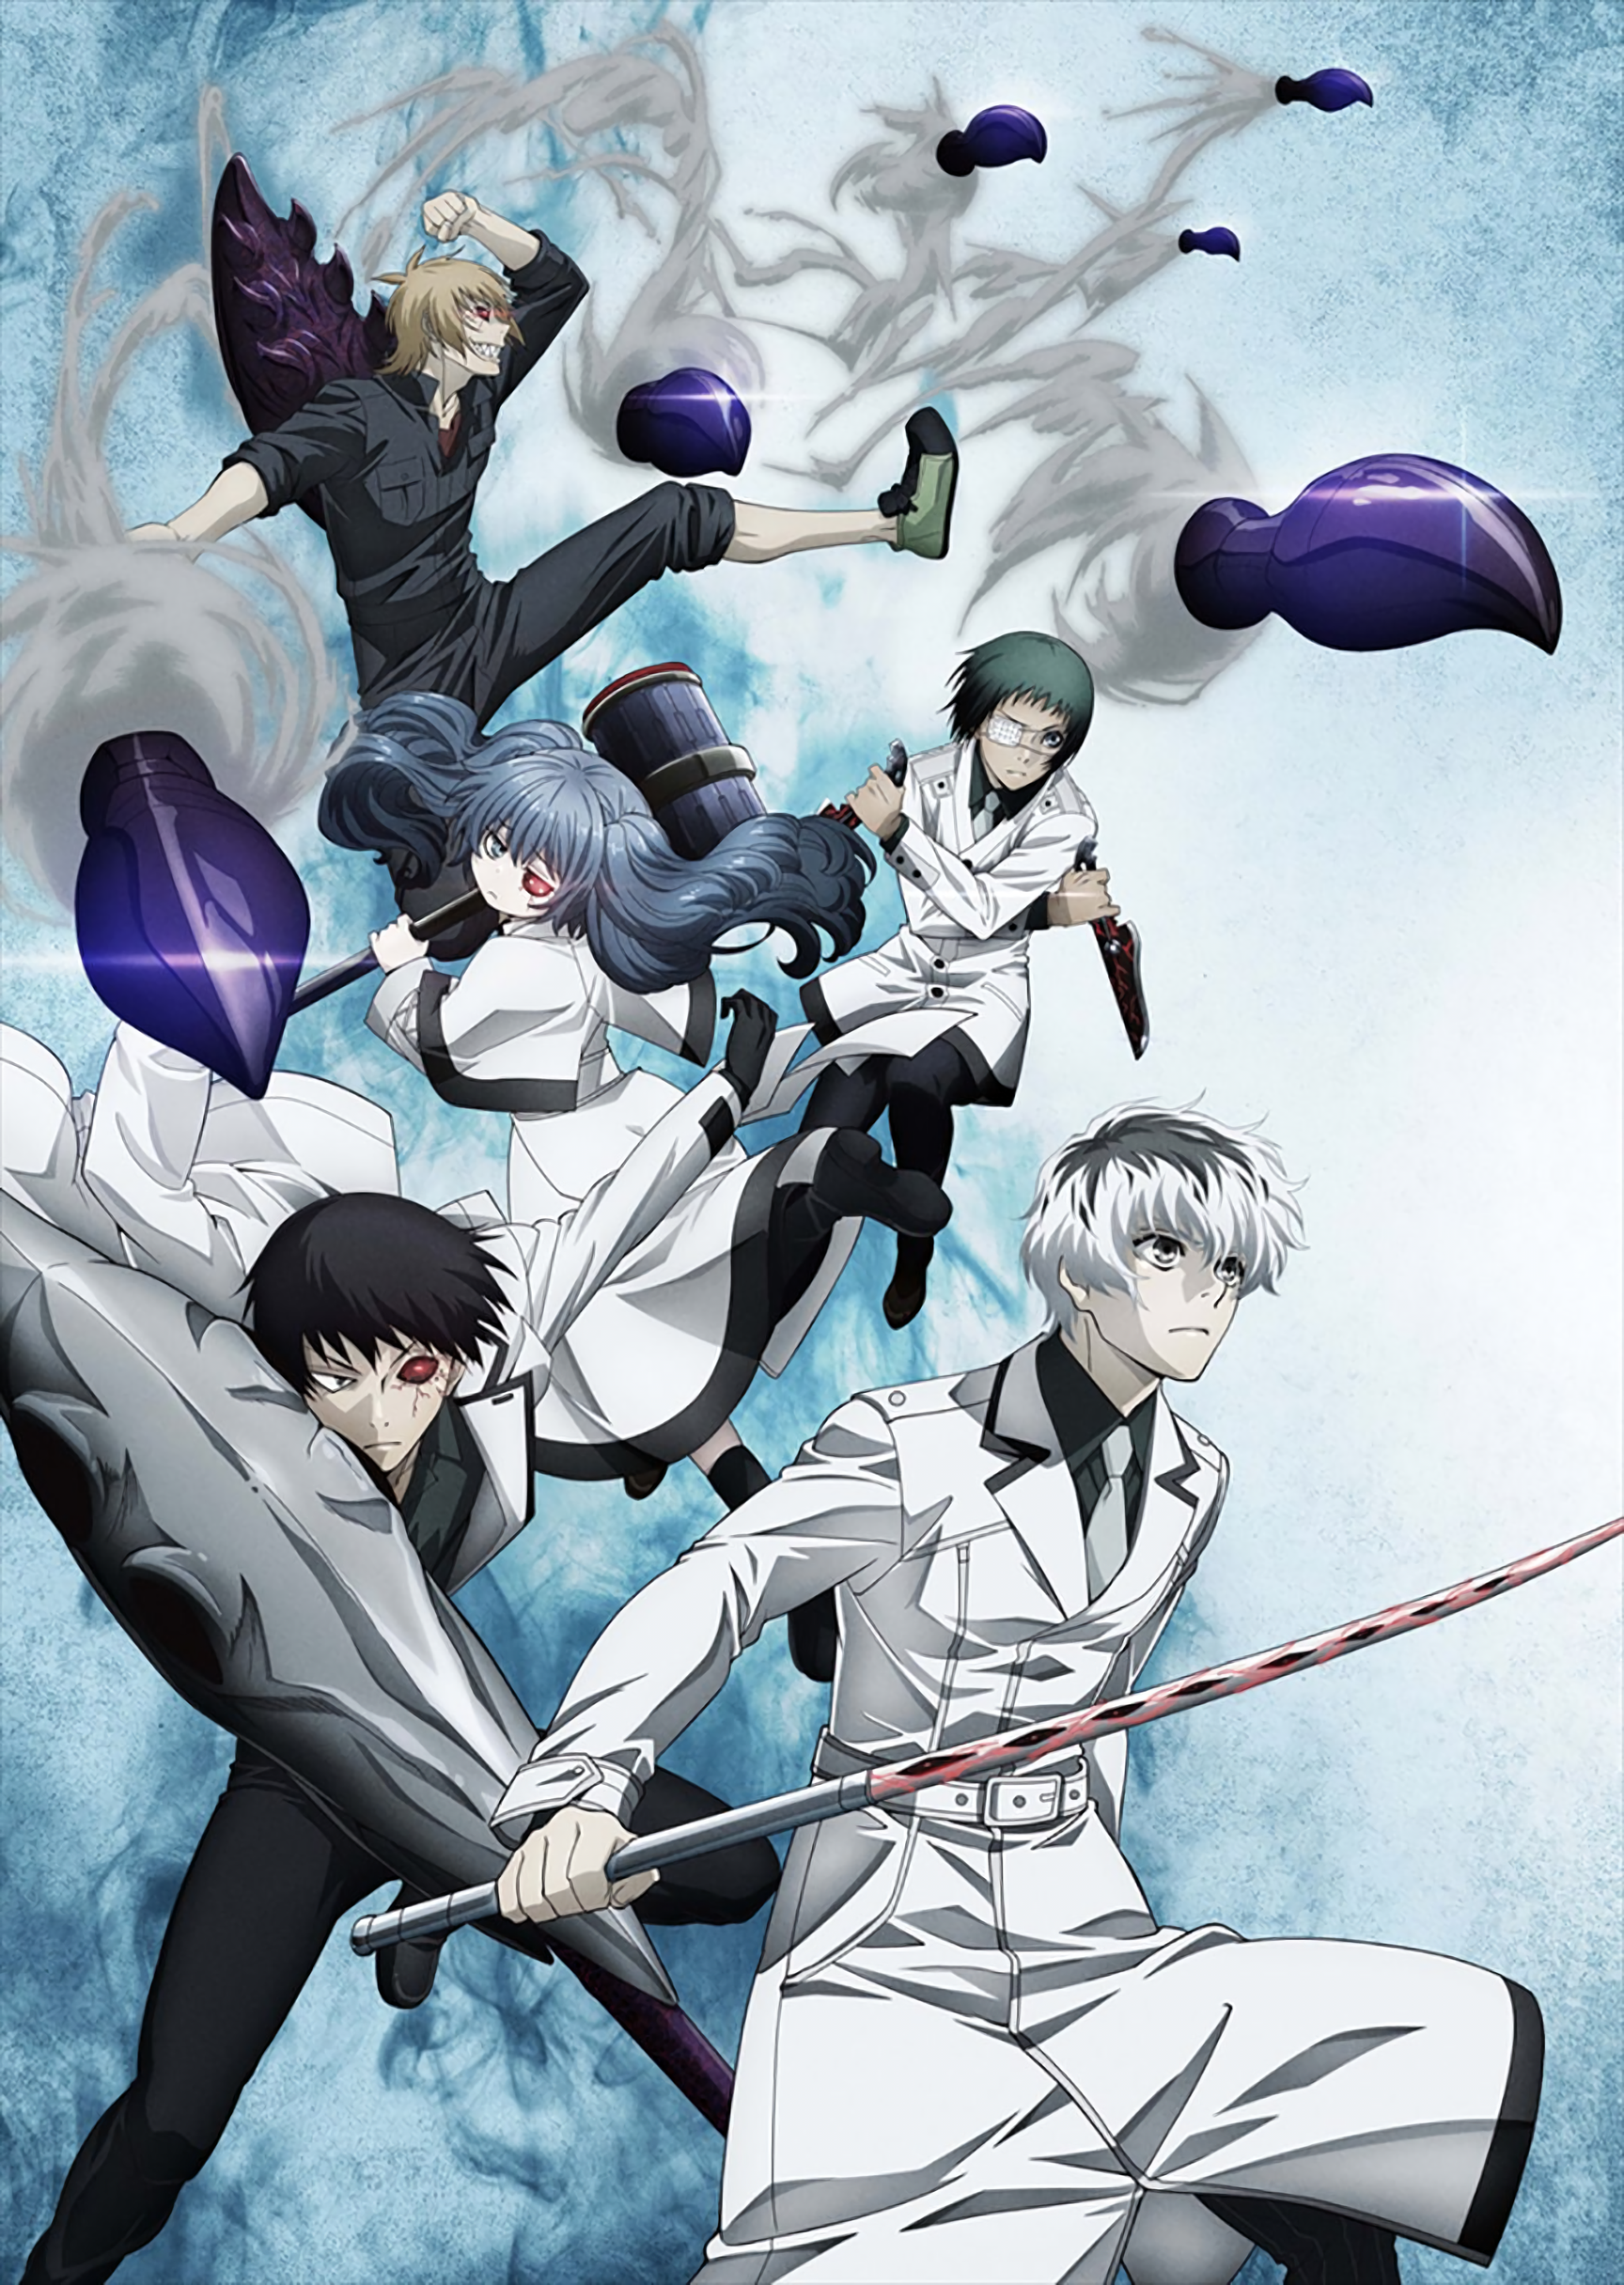 Tokyo Ghoulre Quinx Squad Tokyo ghoul pictures, Tokyo